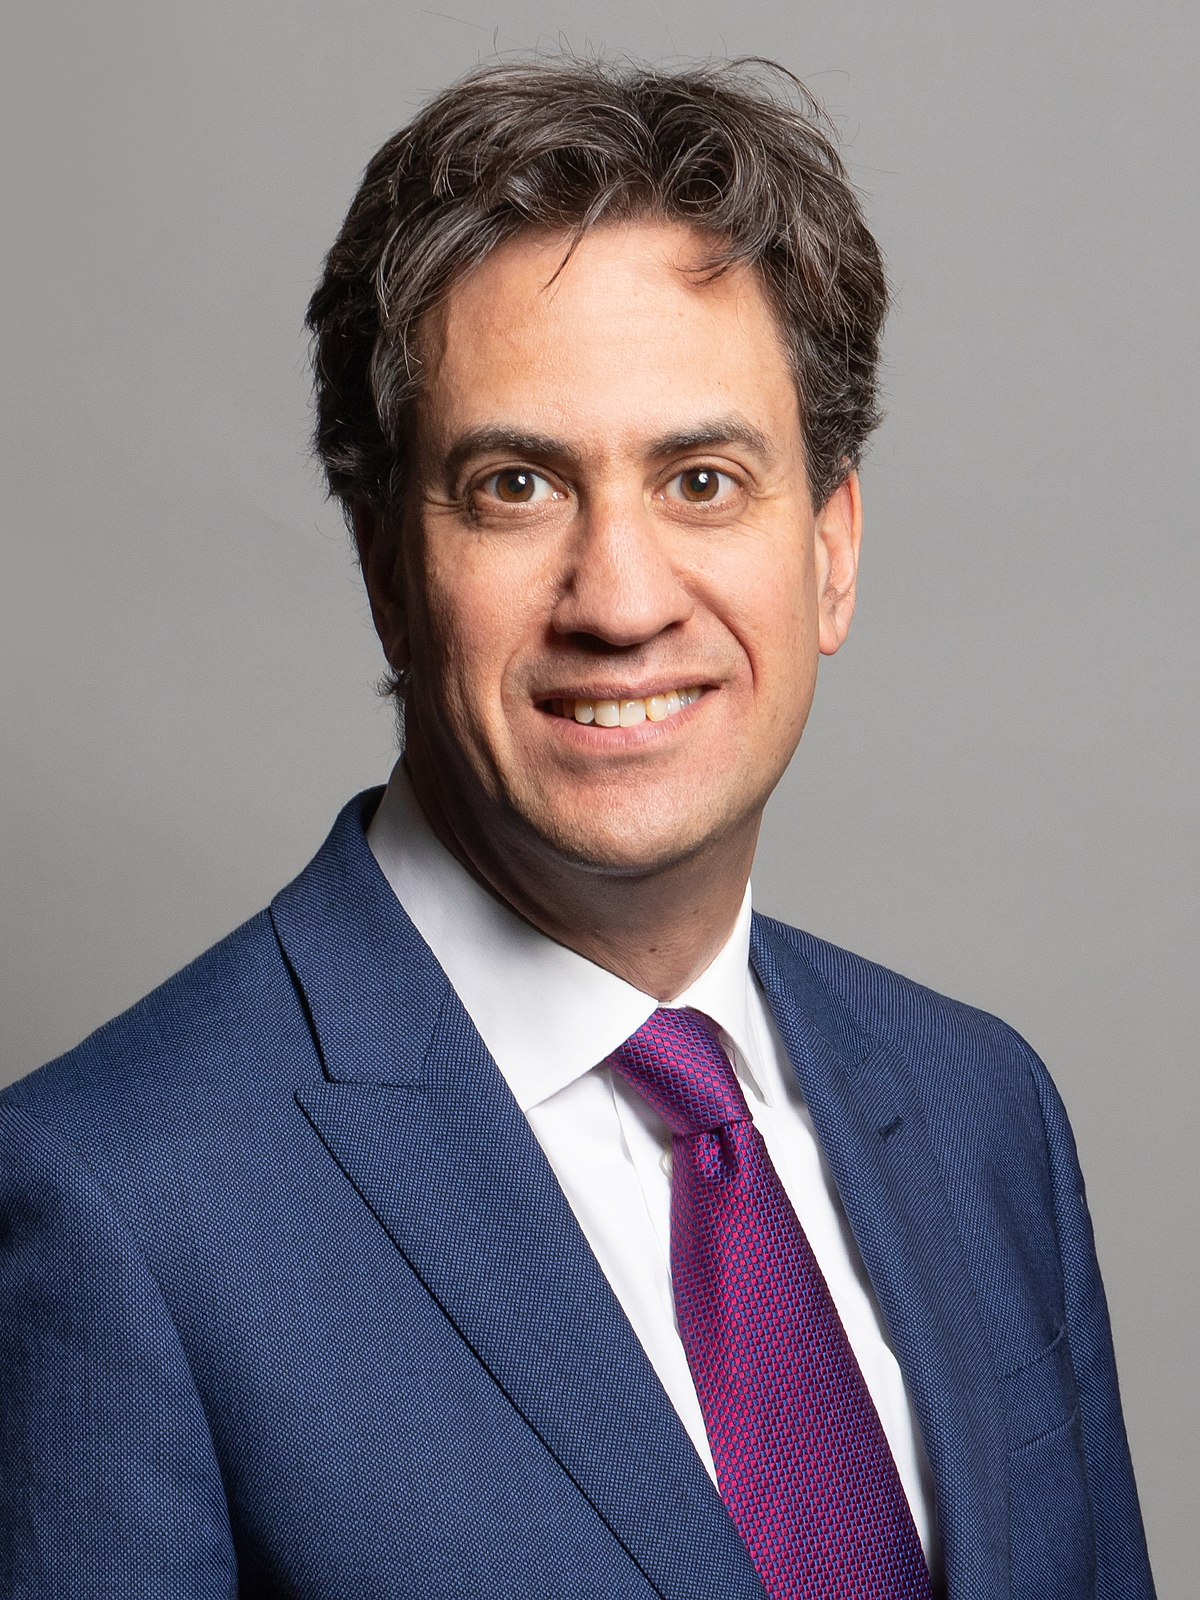 Exclusive Ed Miliband interview: Ill return politics to